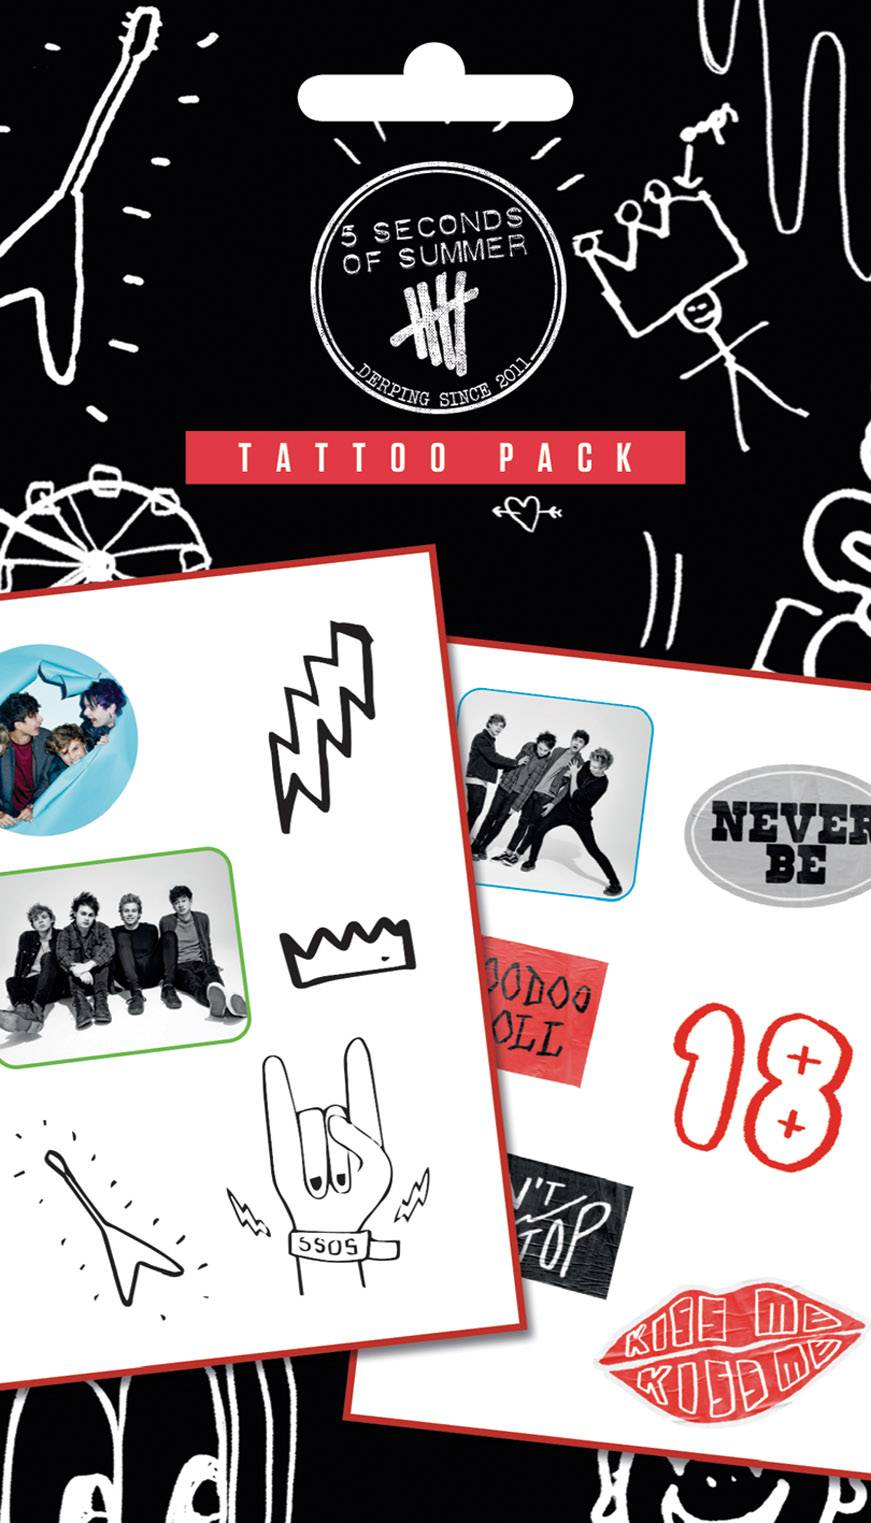 5 Seconds Of Summermix Tattoo Pack Ideas And Designs